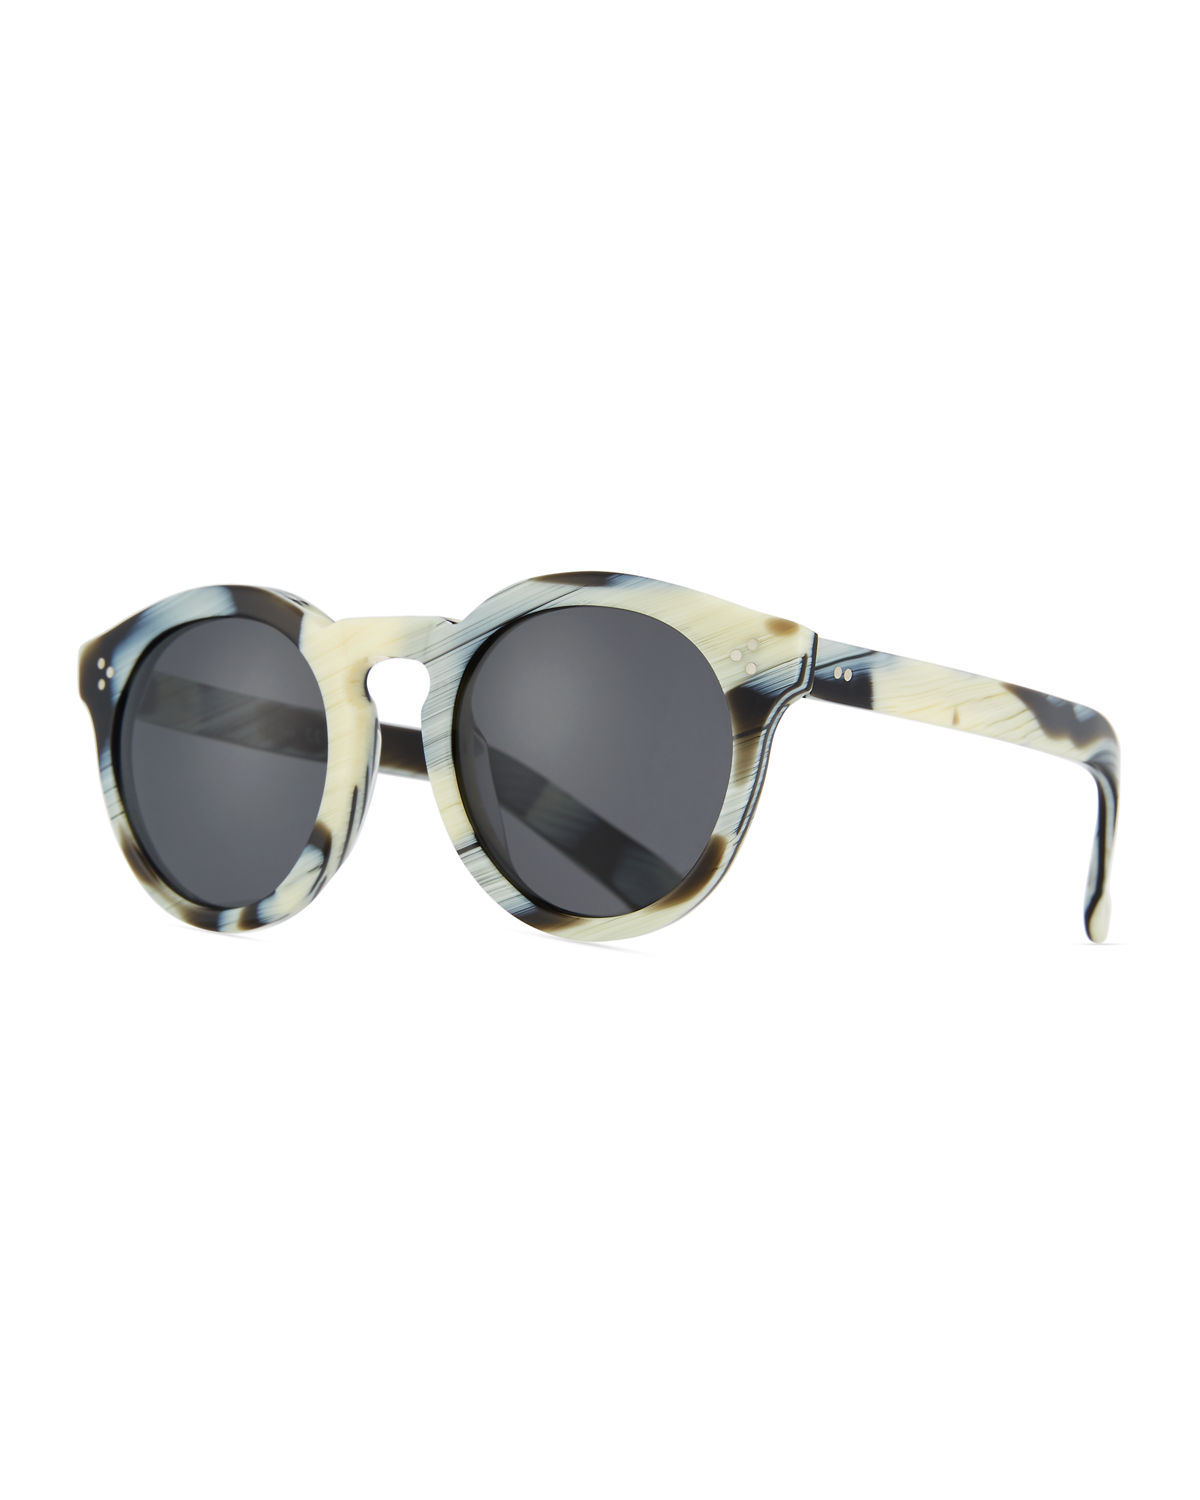 Patterned Round Monochromatic Sunglasses